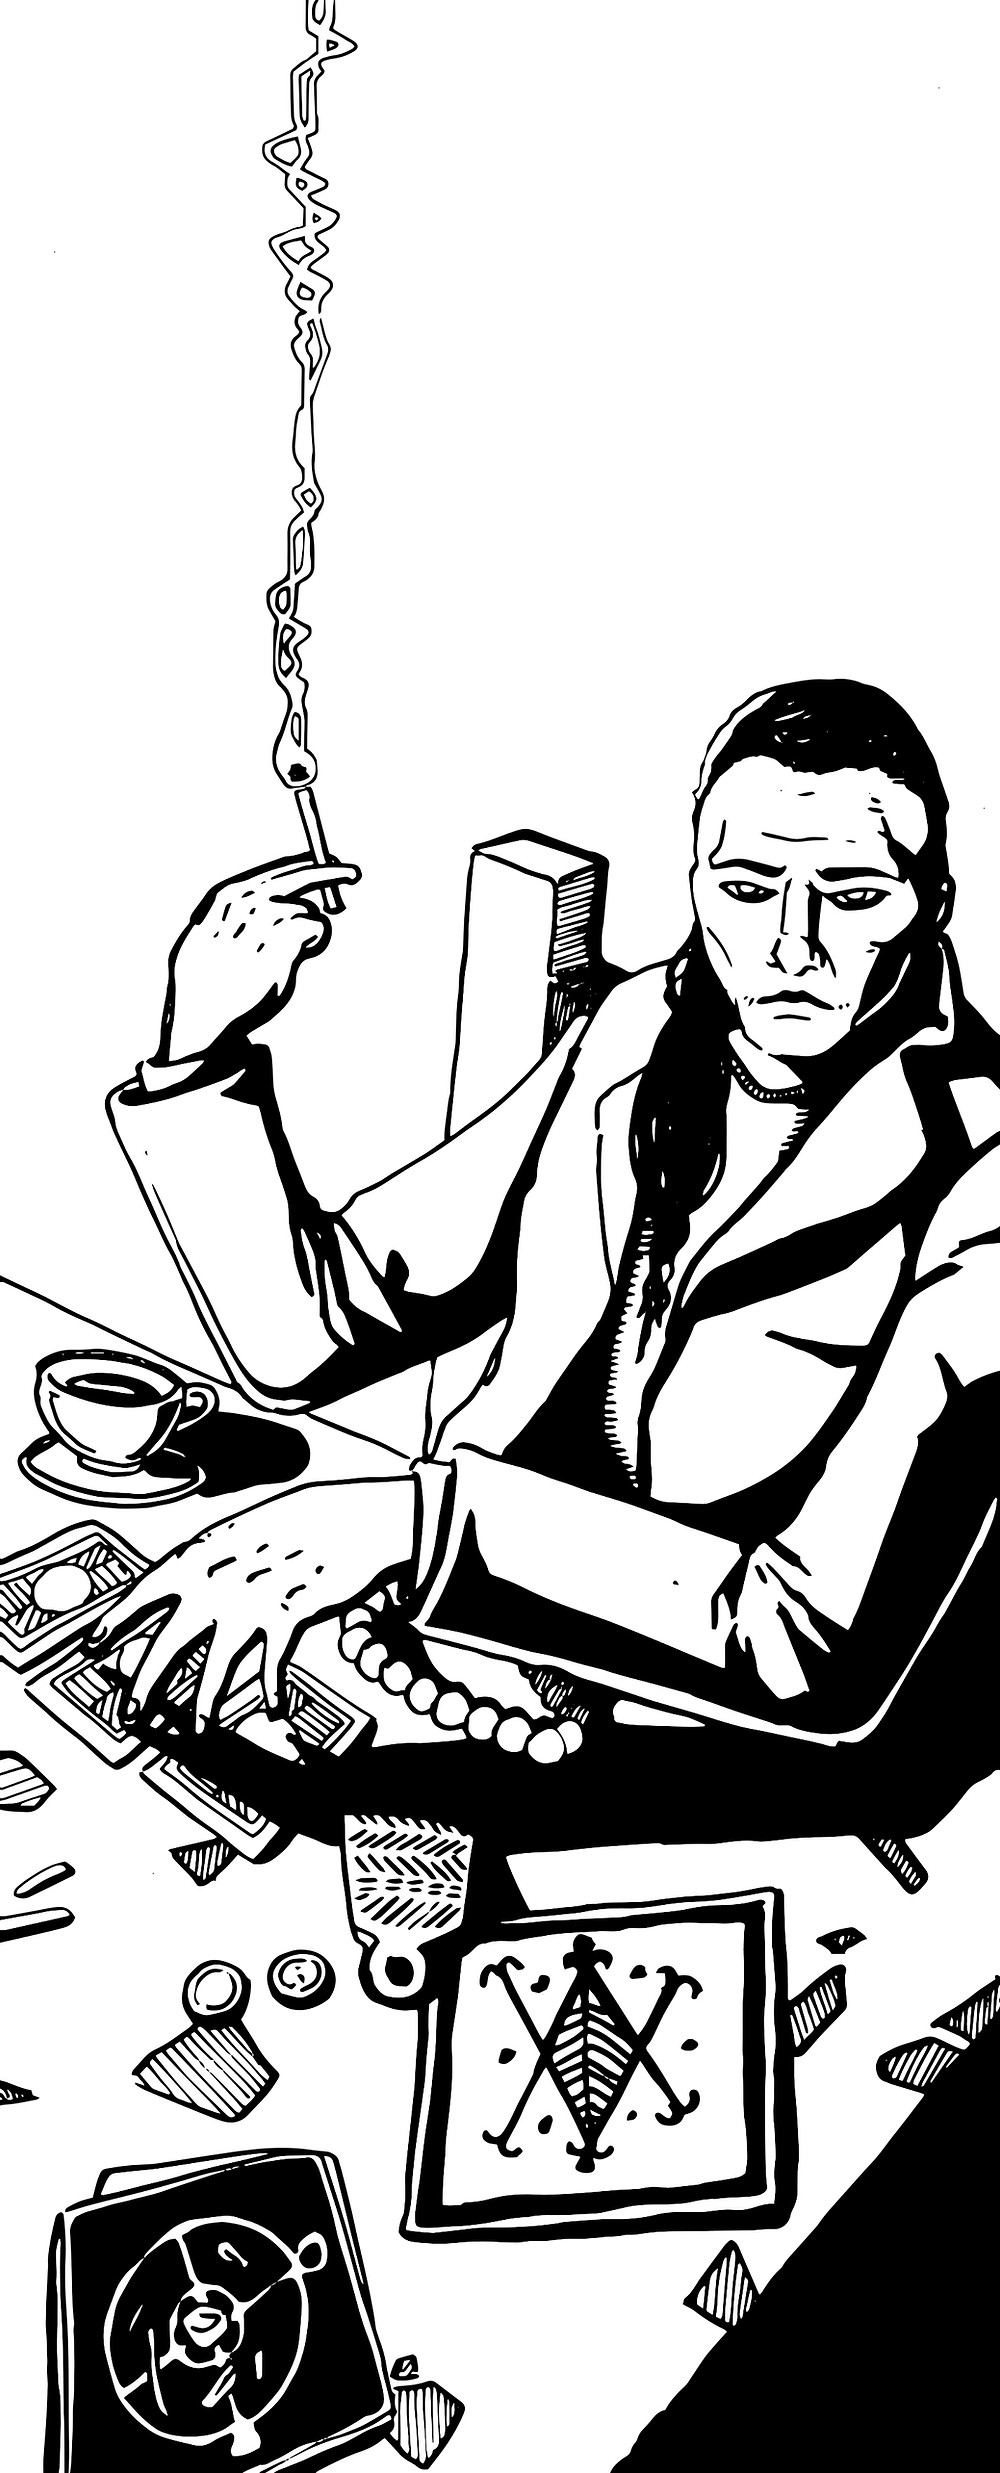 A black and white illustration of an occultist smoking in front of books.